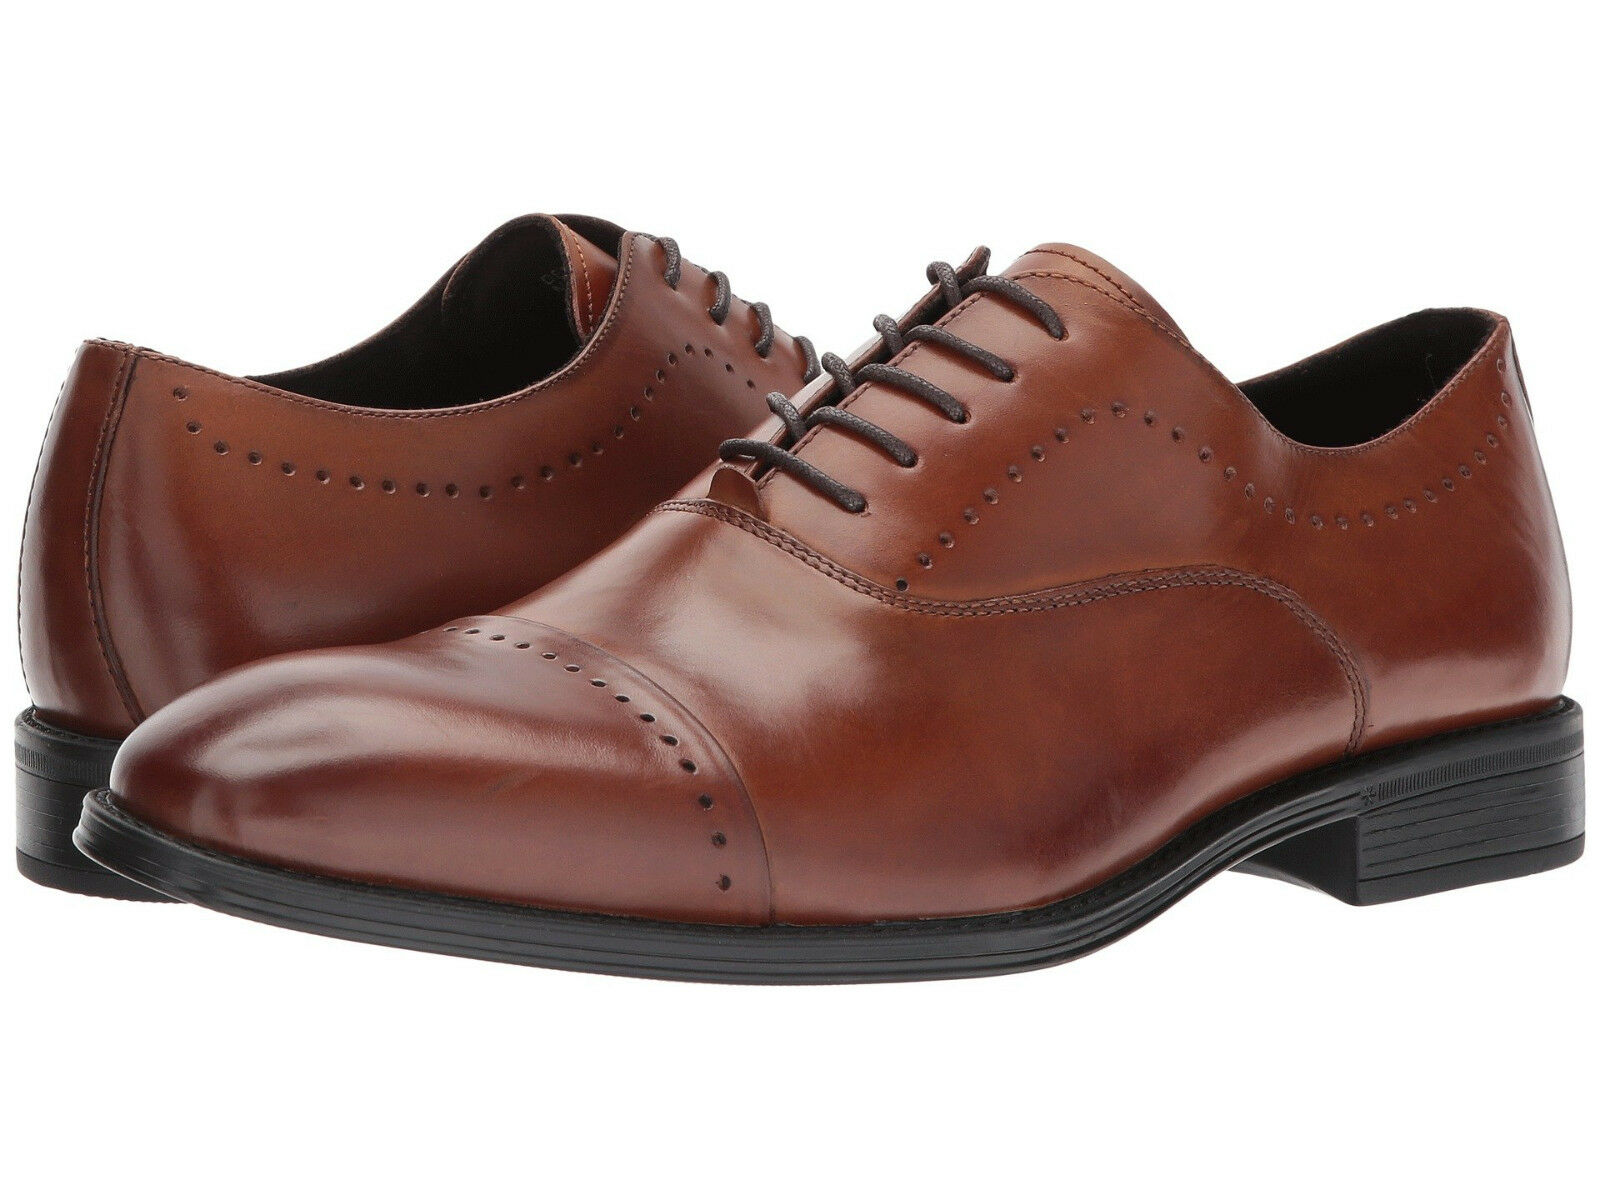 Kenneth Cole NY Men's Design 102212 US 13 M Cognac Leather Oxfords shoes